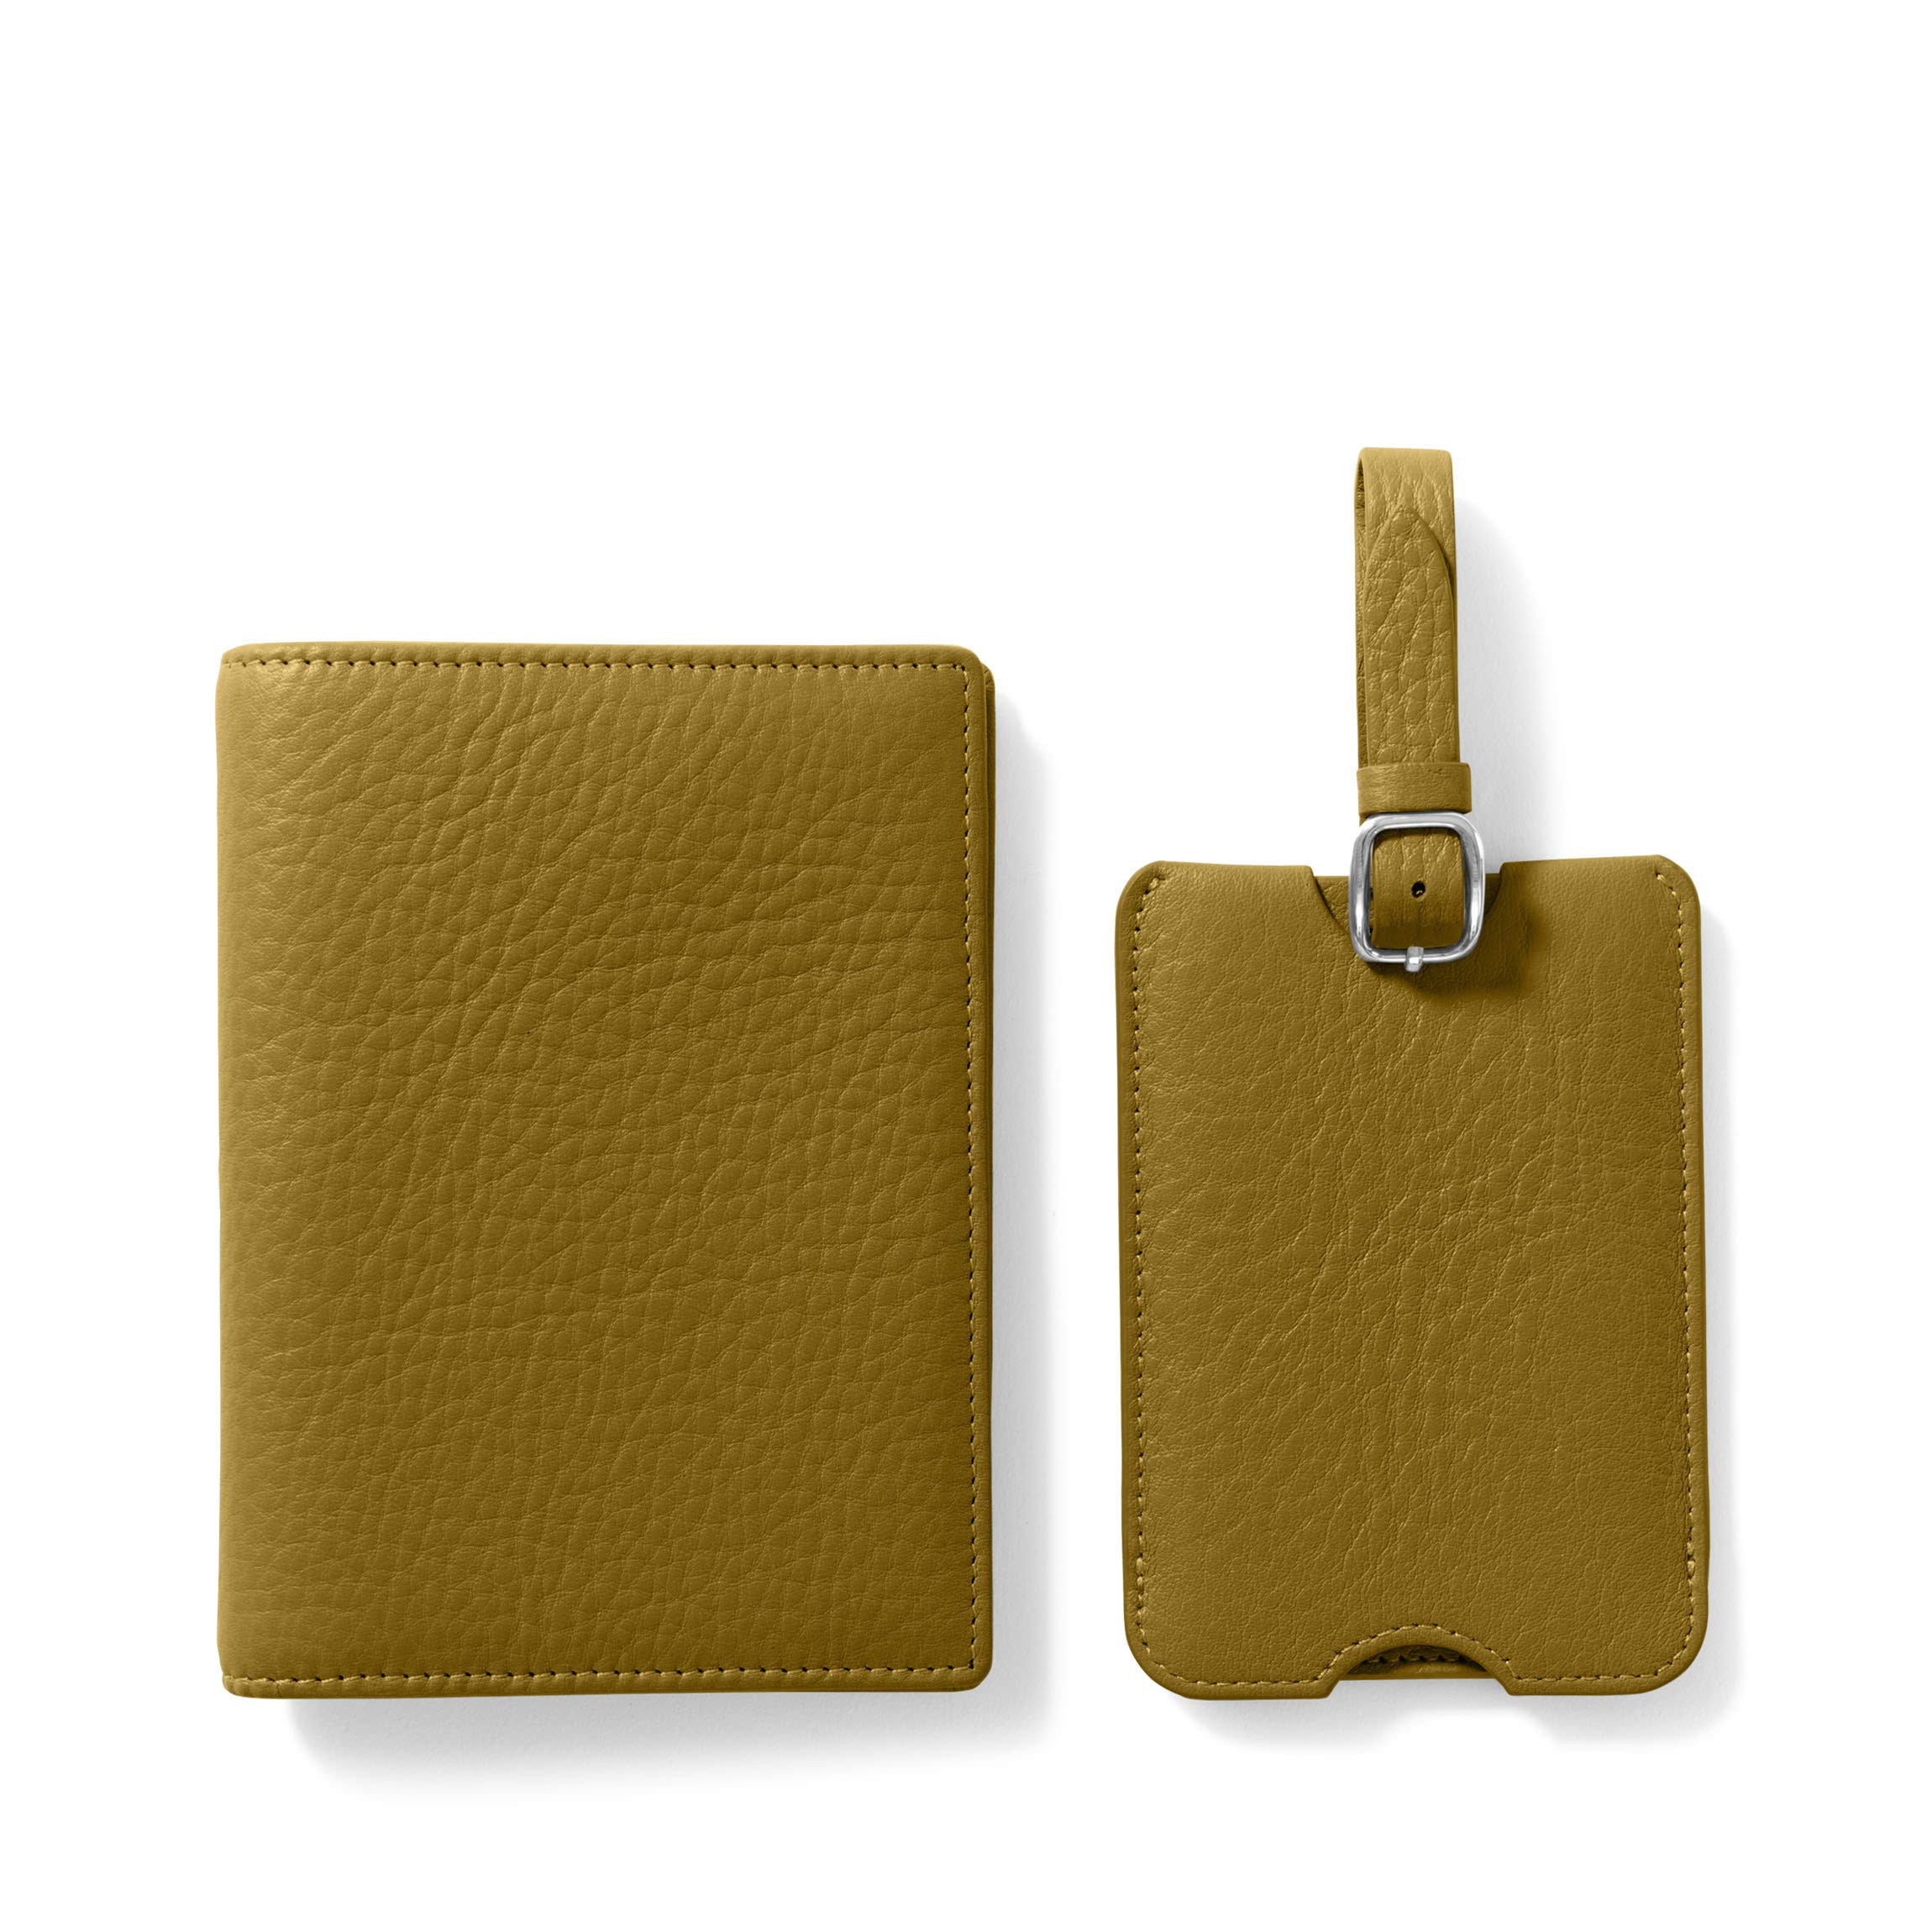 Deluxe Passport Cover + Luggage Tag Set - Full Grain Leather Leather - Chartreuse (Green)